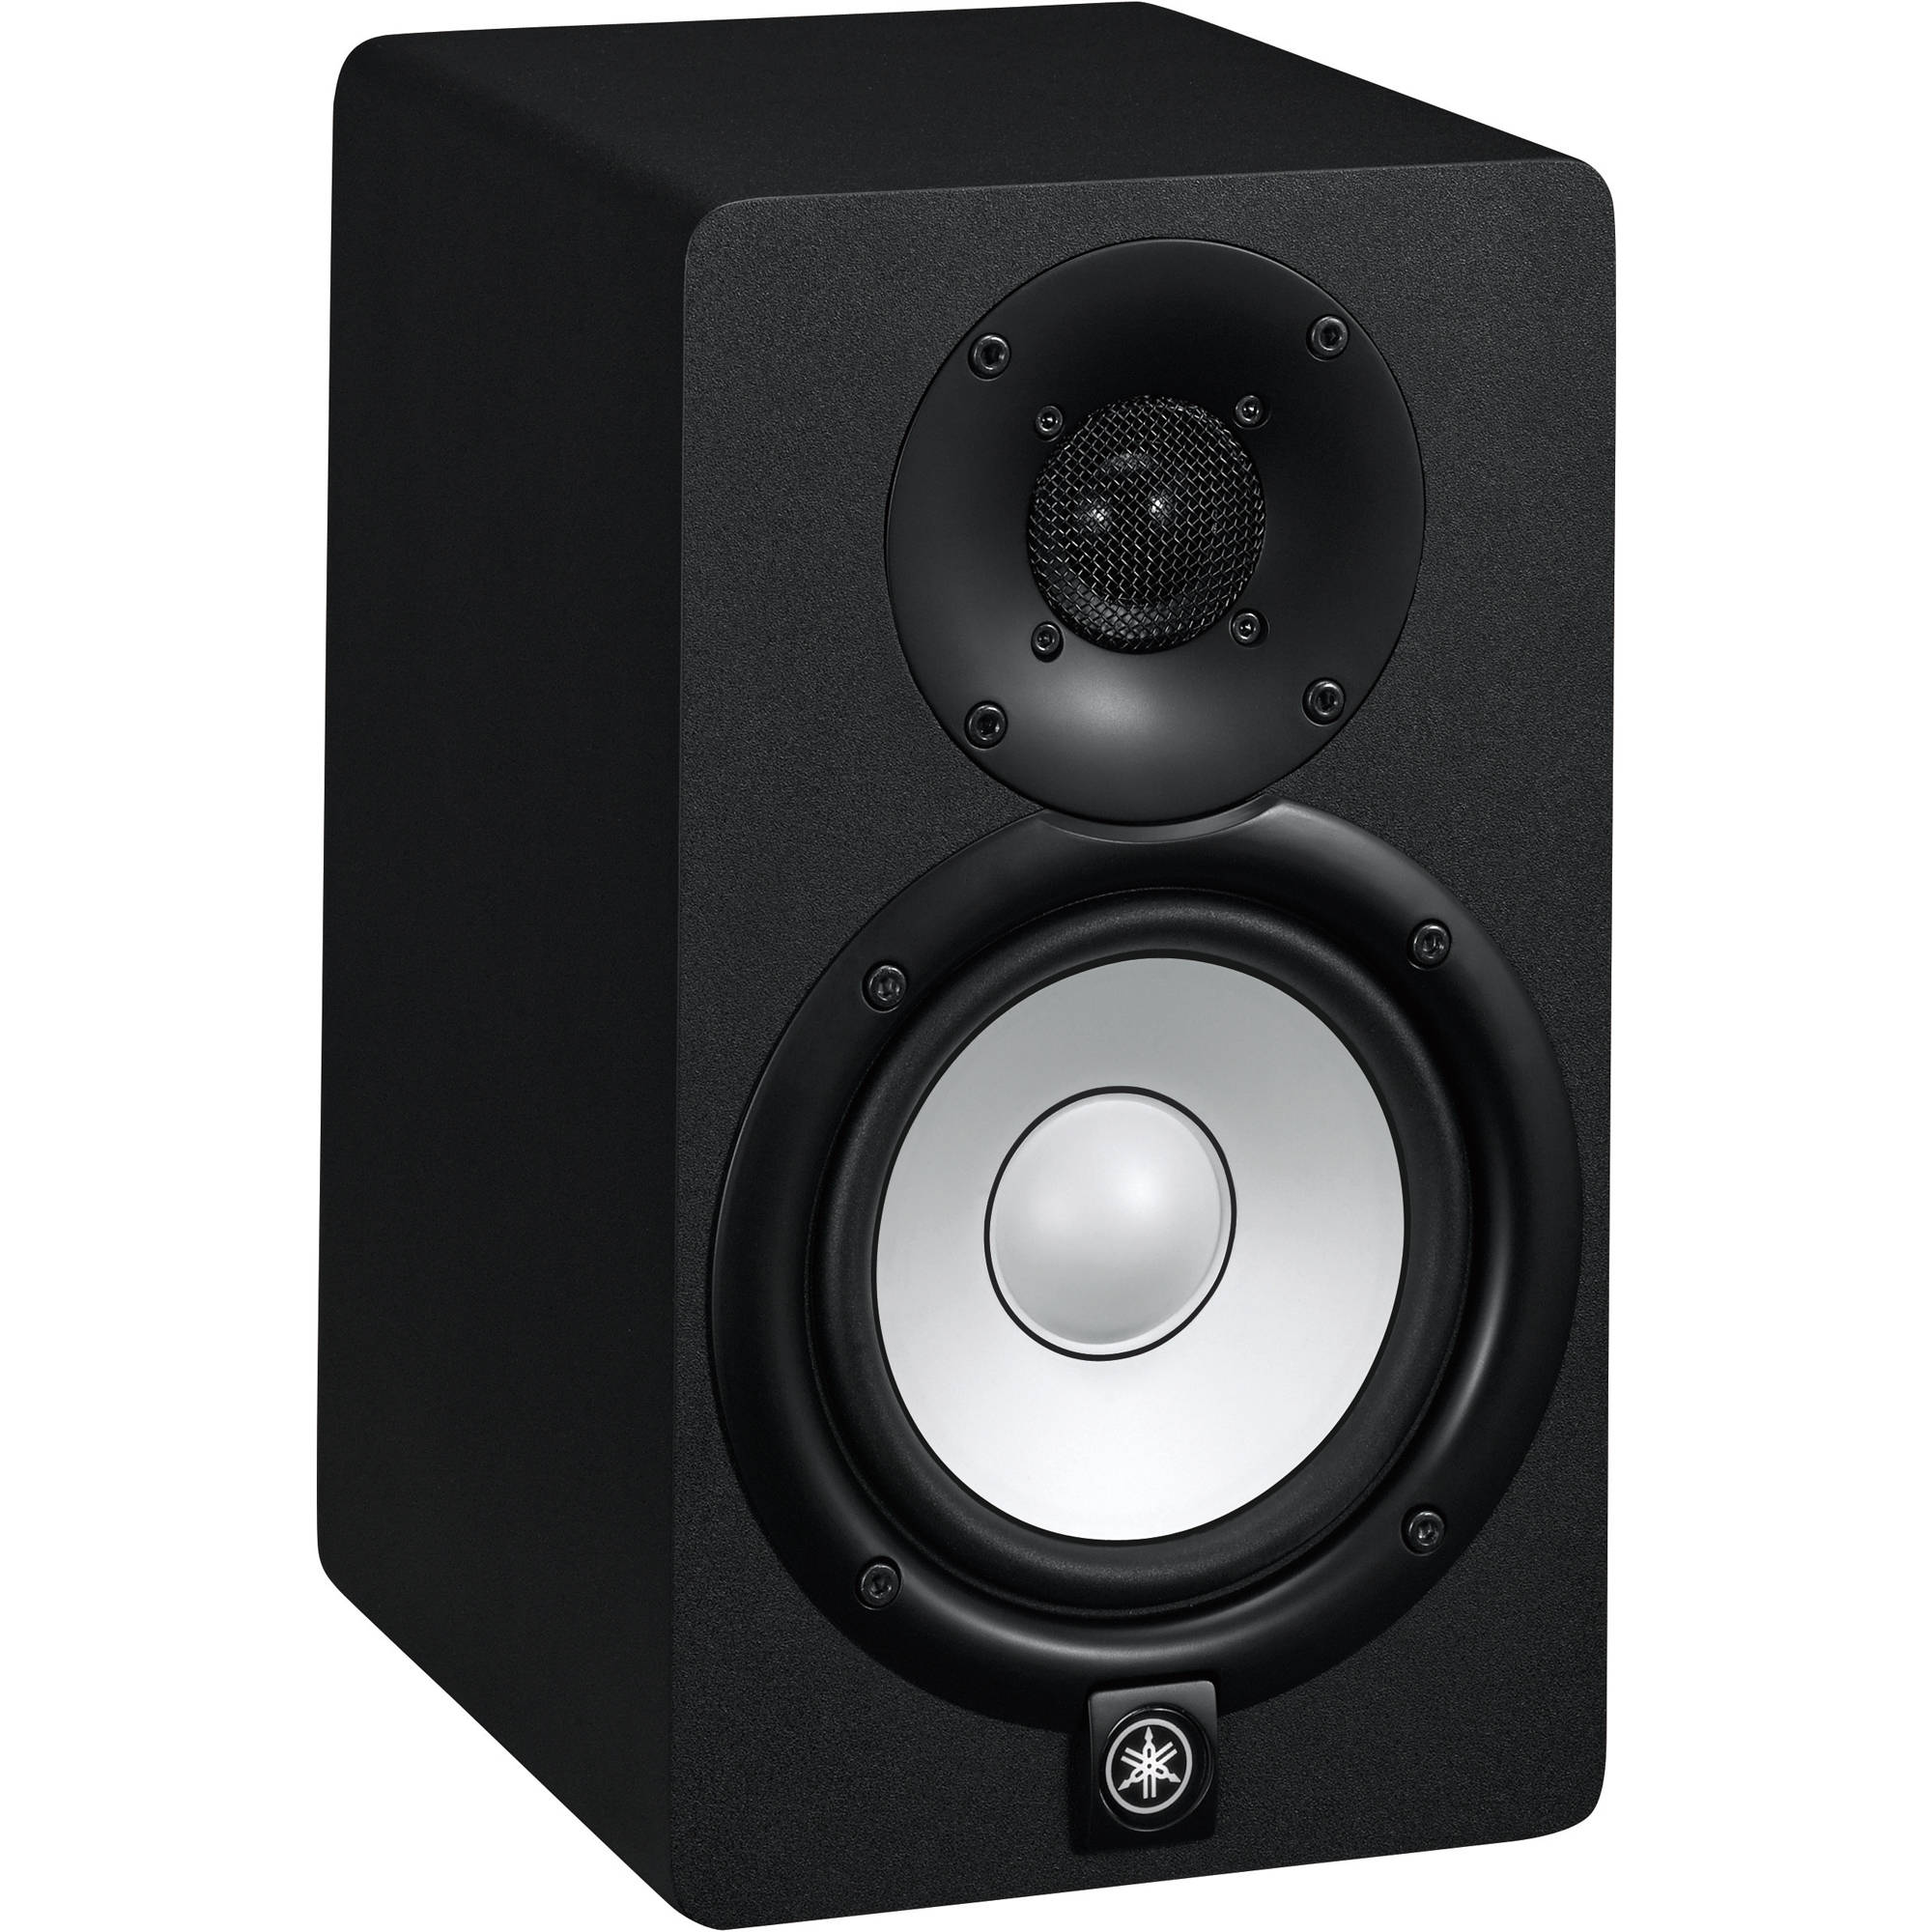 Yamaha hs5 powered studio monitor hs5 b h photo video for Yamaha powered monitor speakers